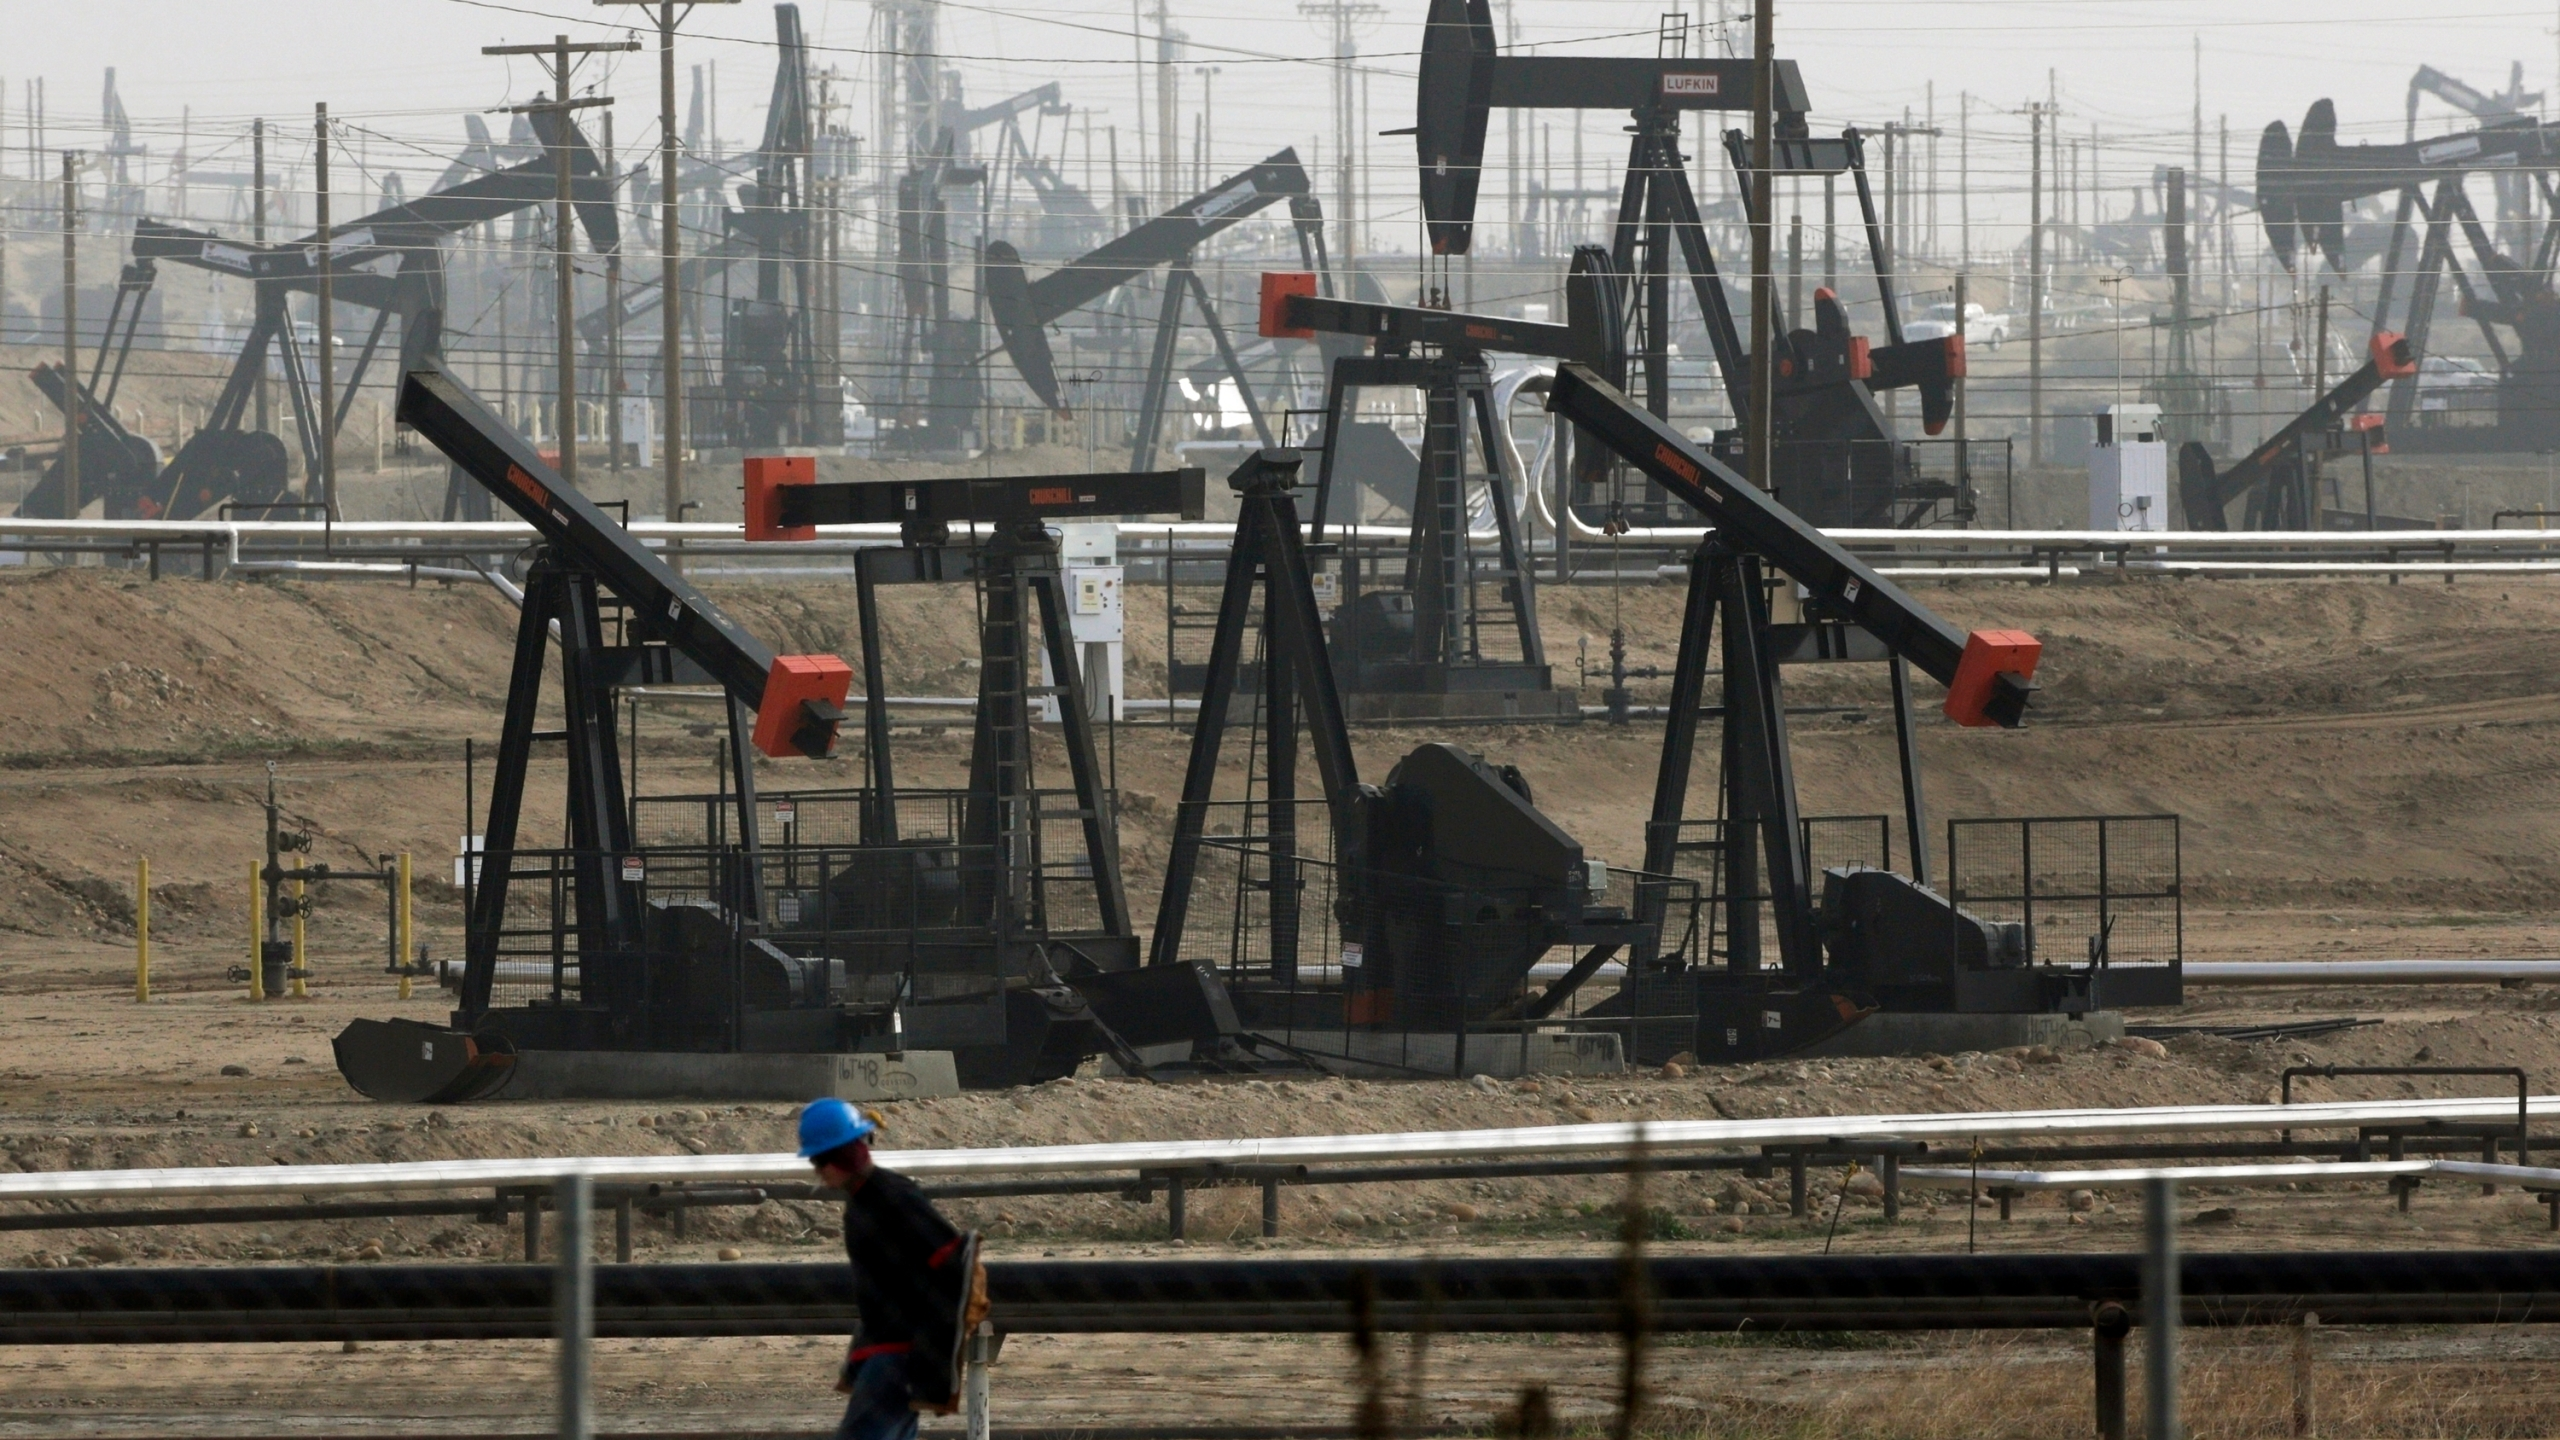 Pumpjacks are seen operating in Bakersfield on Jan. 16, 2015. (Jae C. Hong / Associated Press)